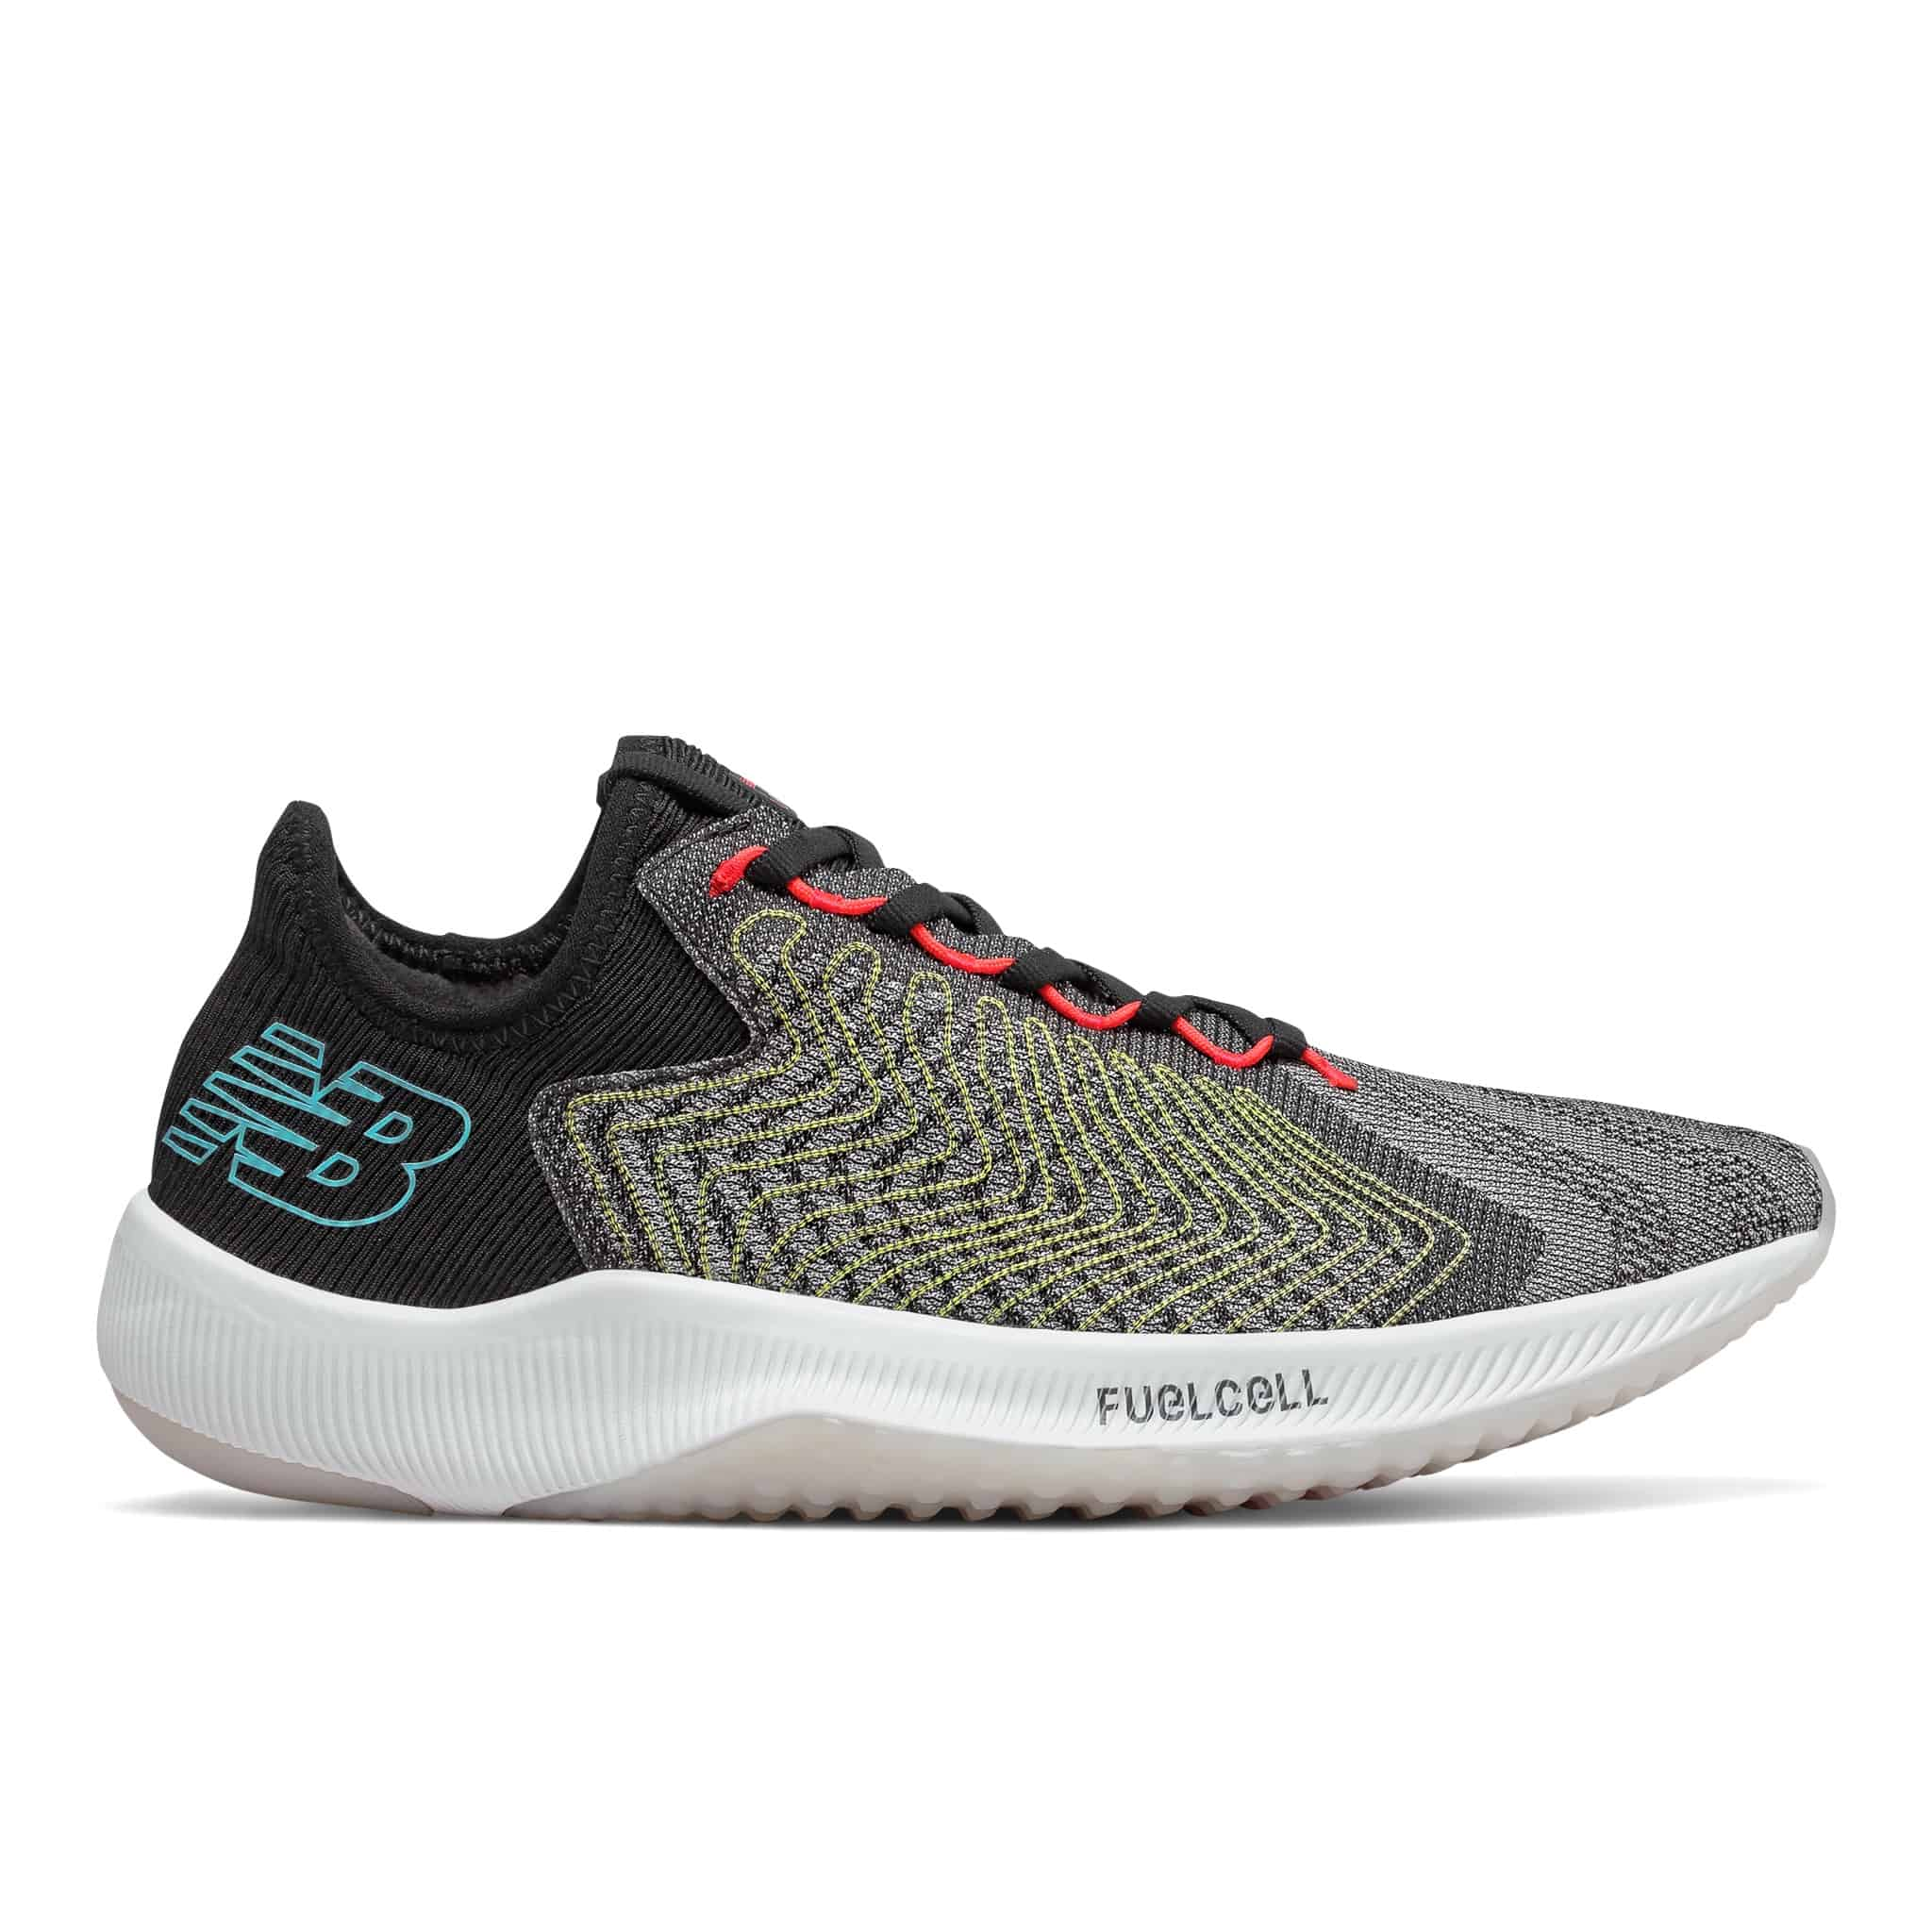 New Balance Fuel Cell Rebel